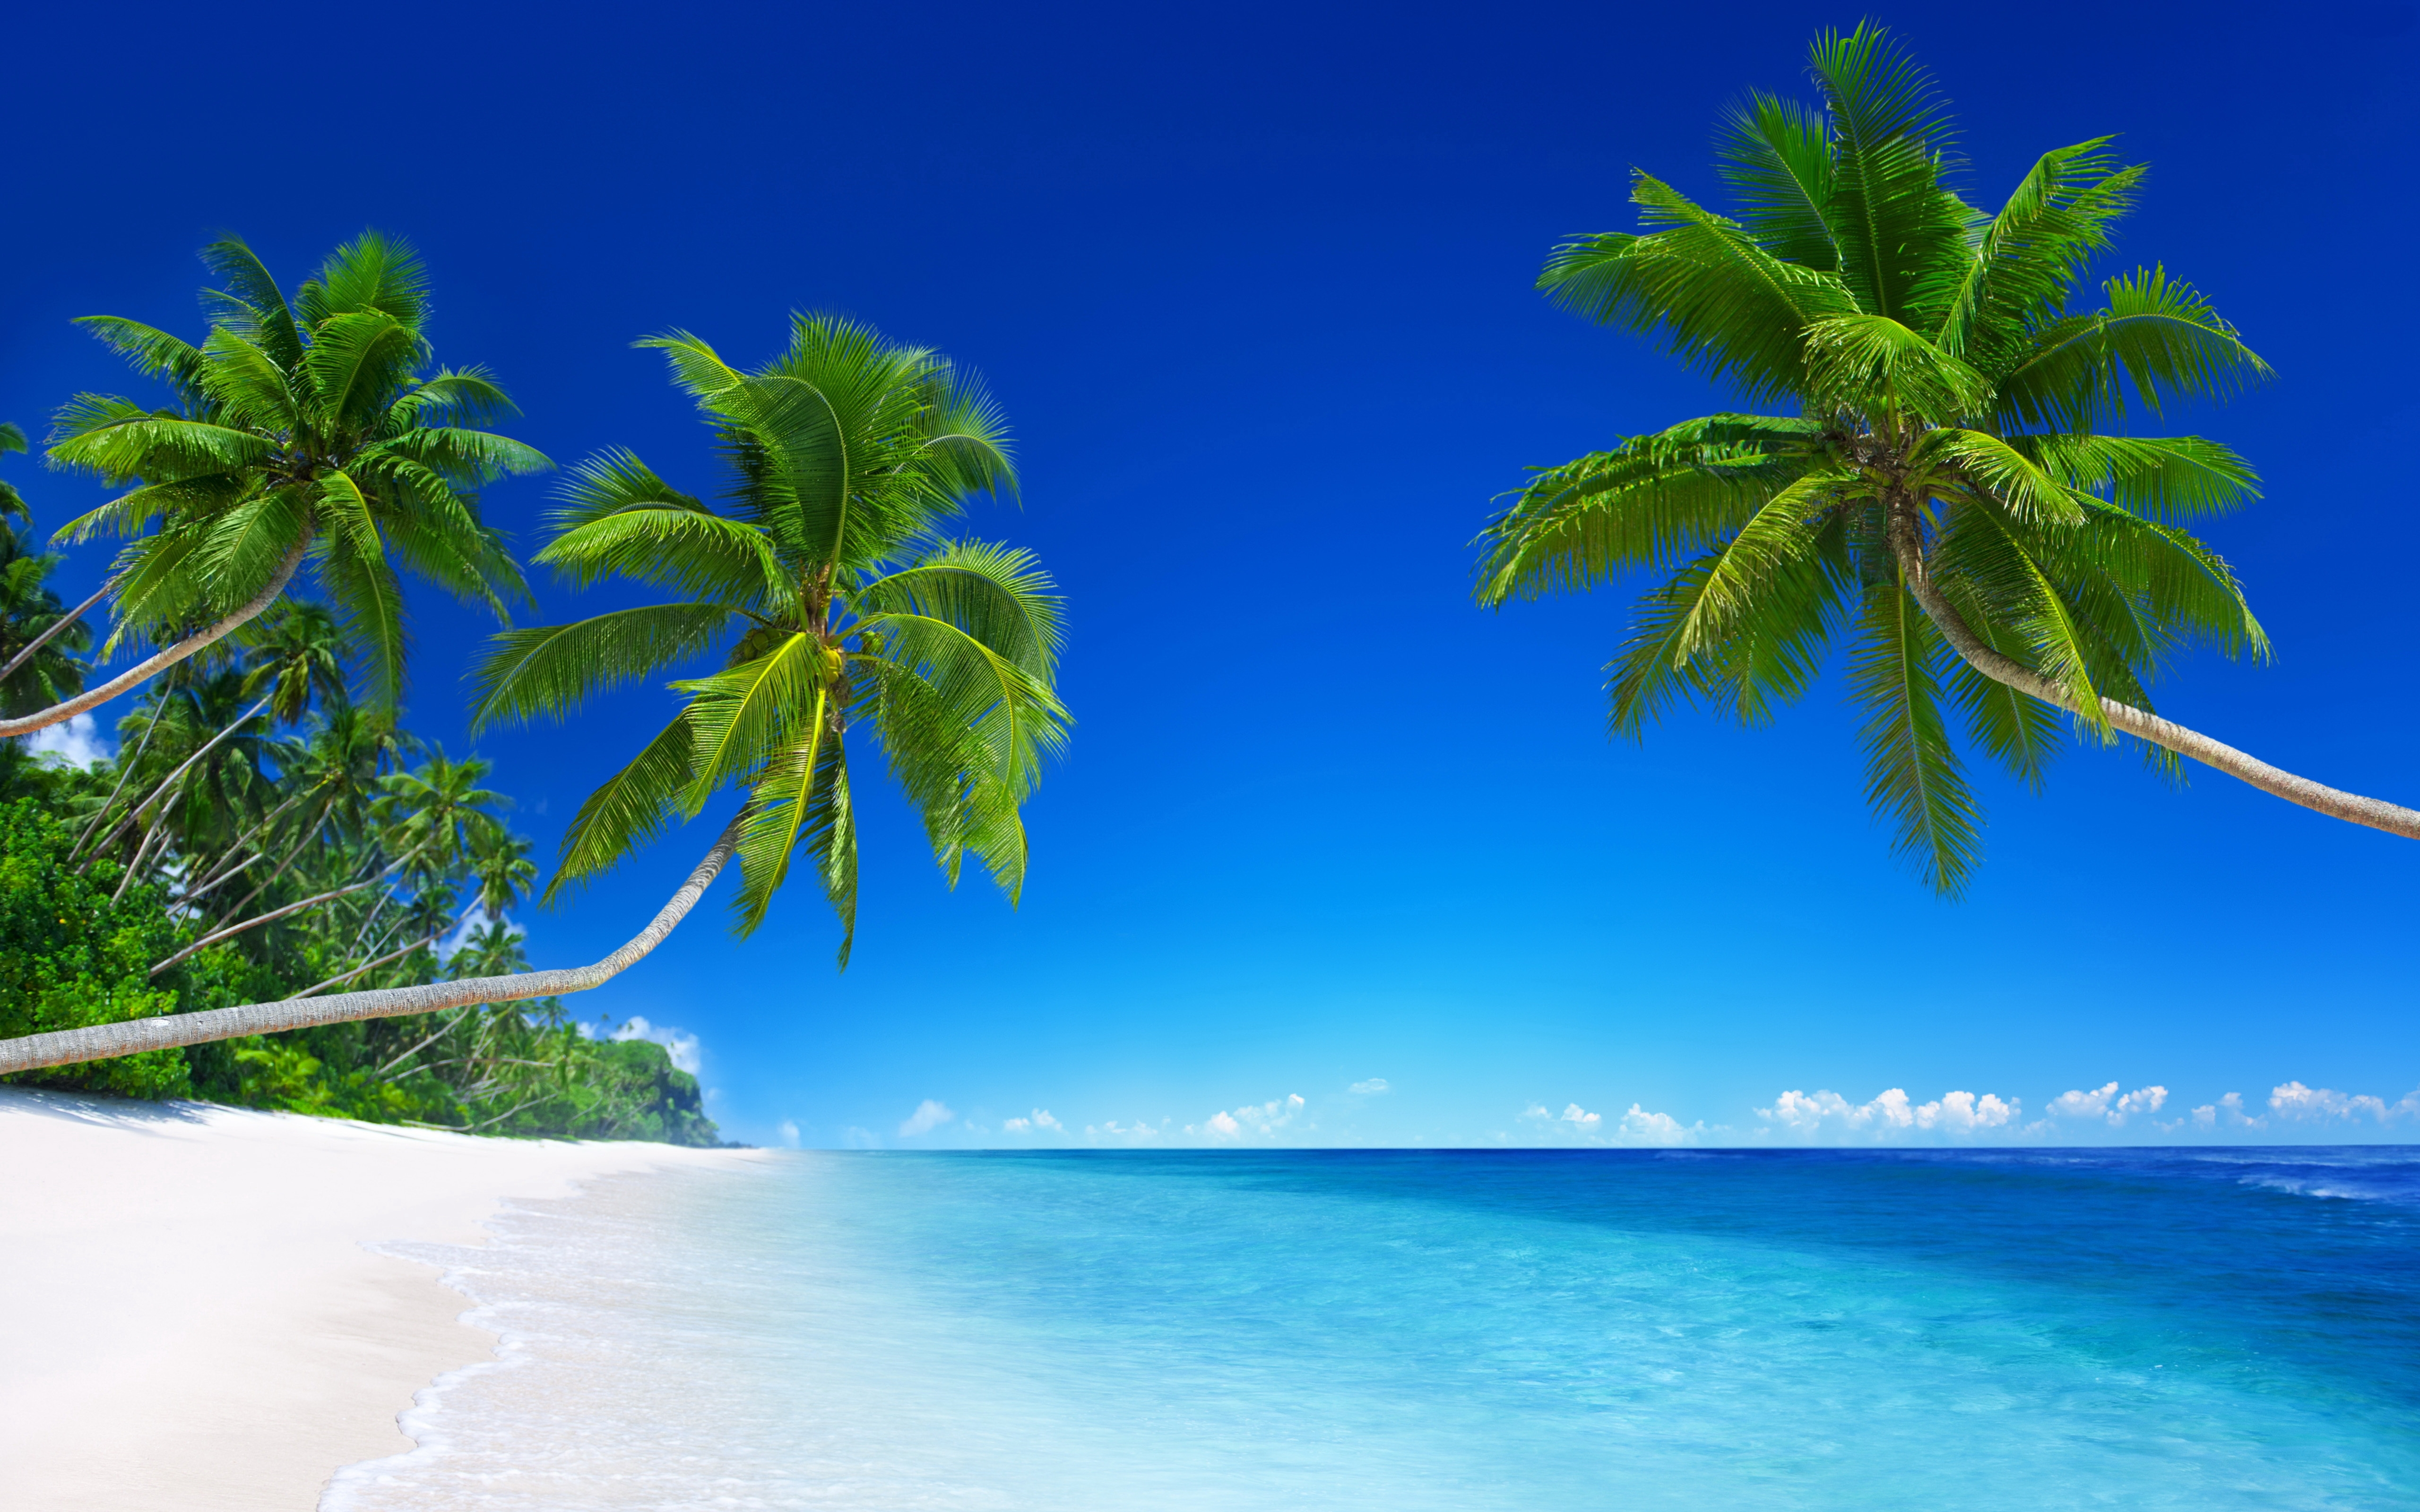 Tropical Beach Paradise 5K wallpaper